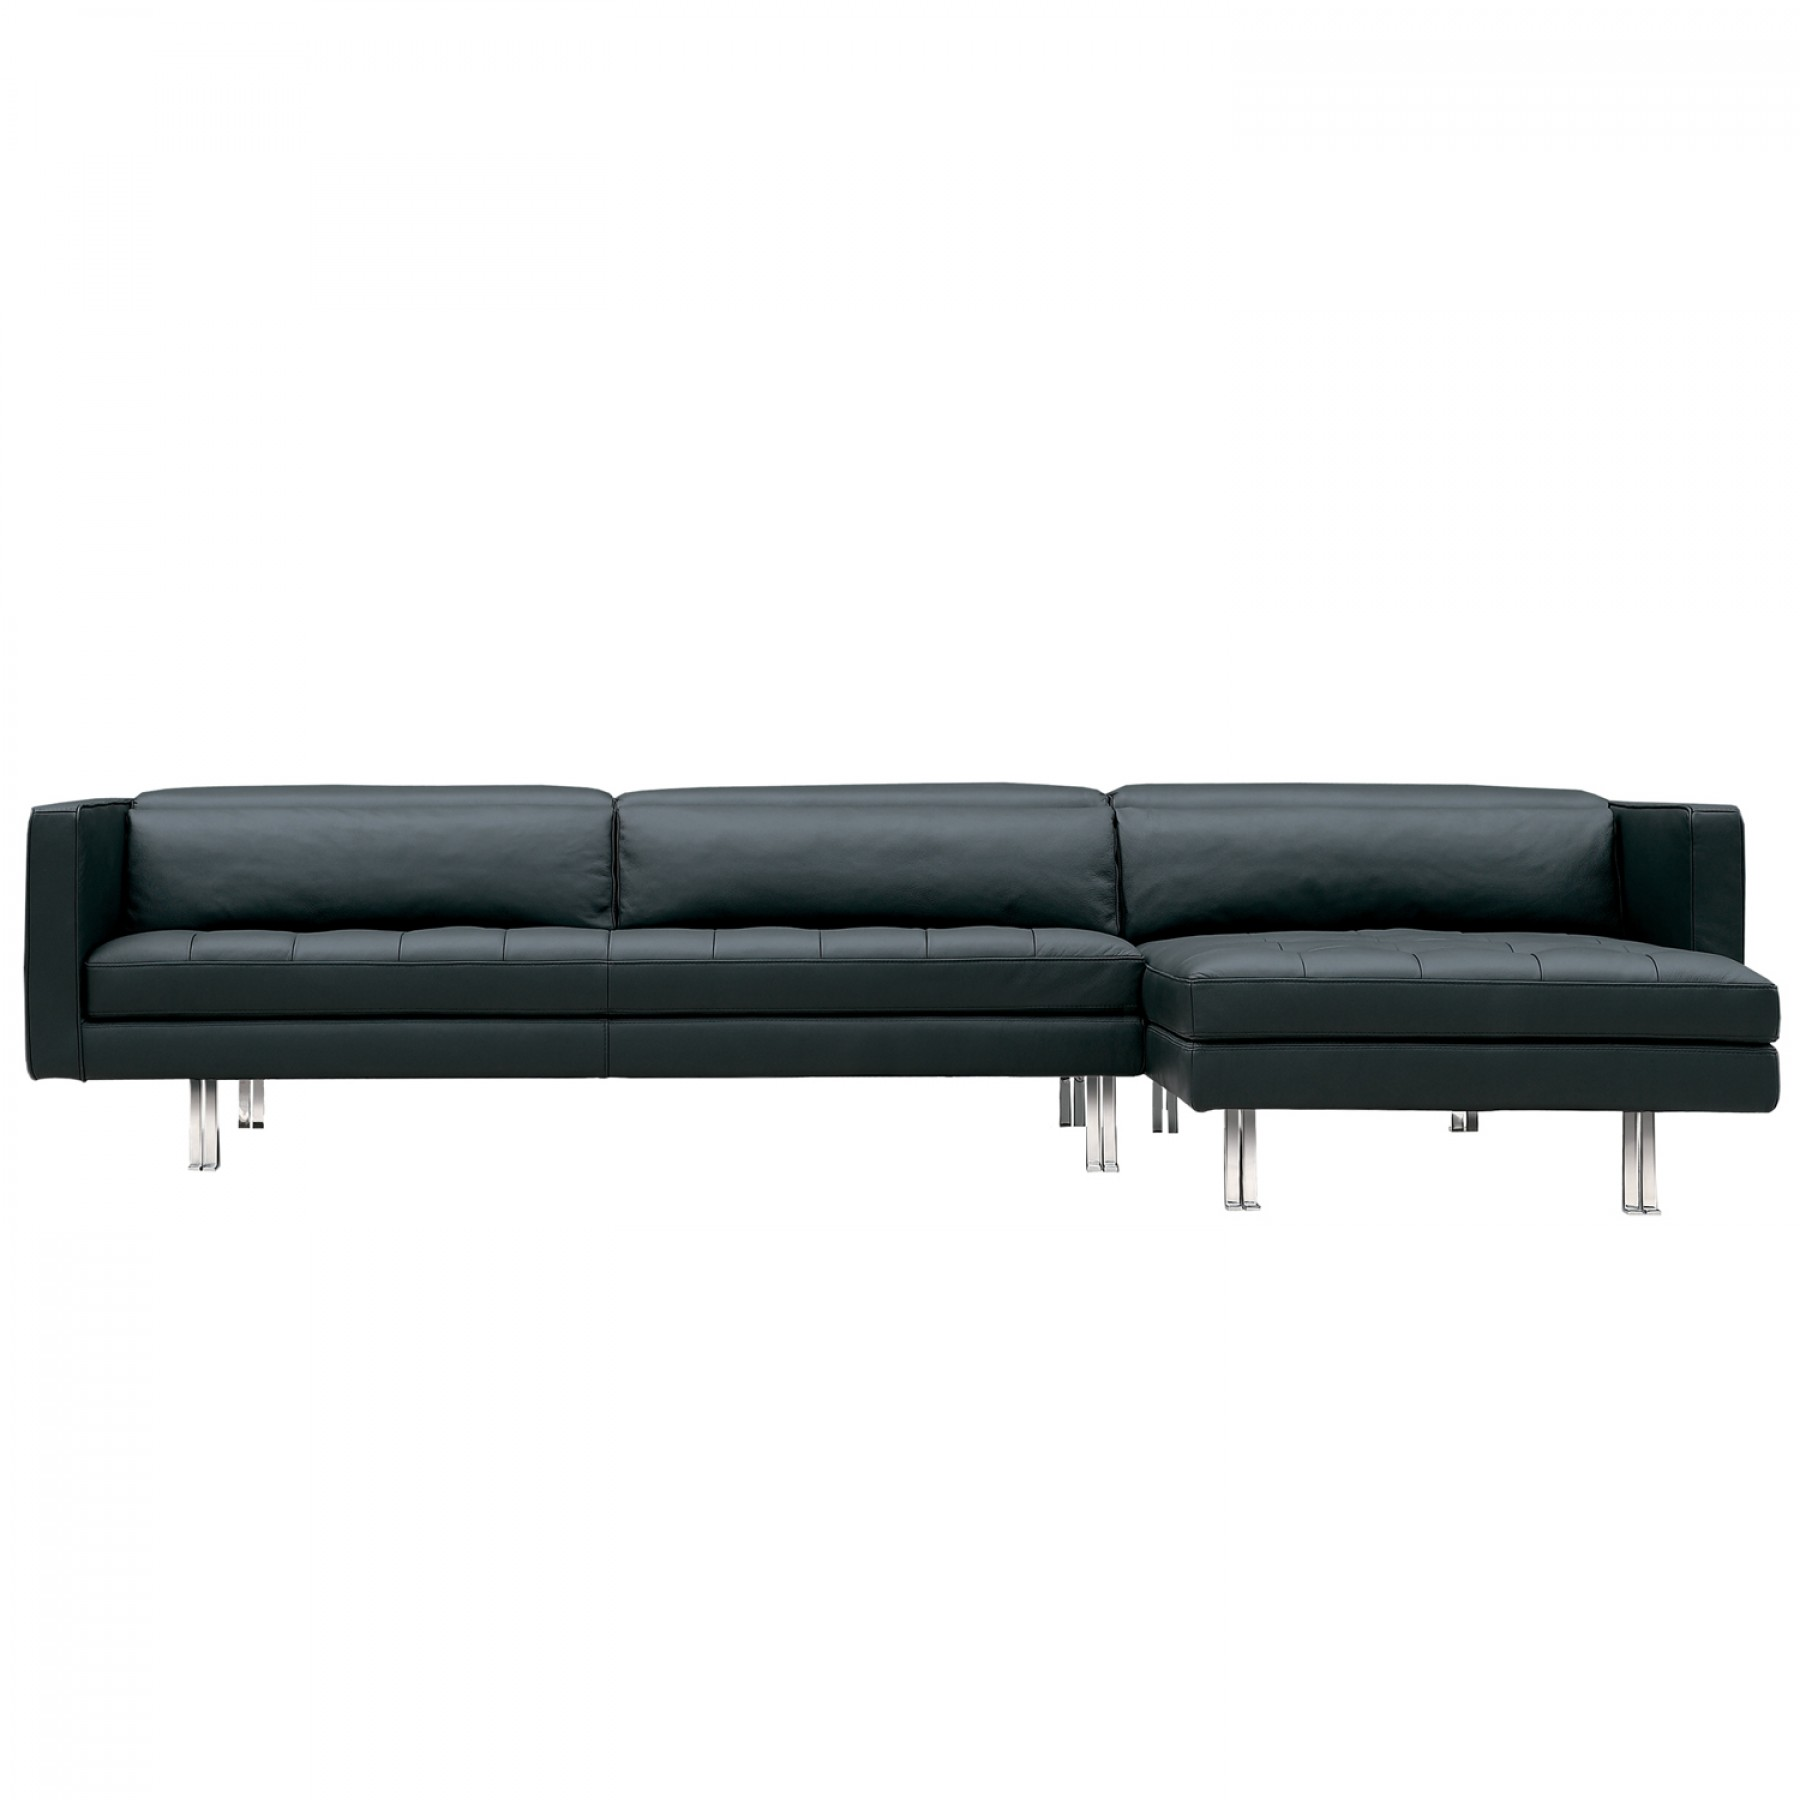 SORANO CHAISE WITH HEADREST Beyond Furniture